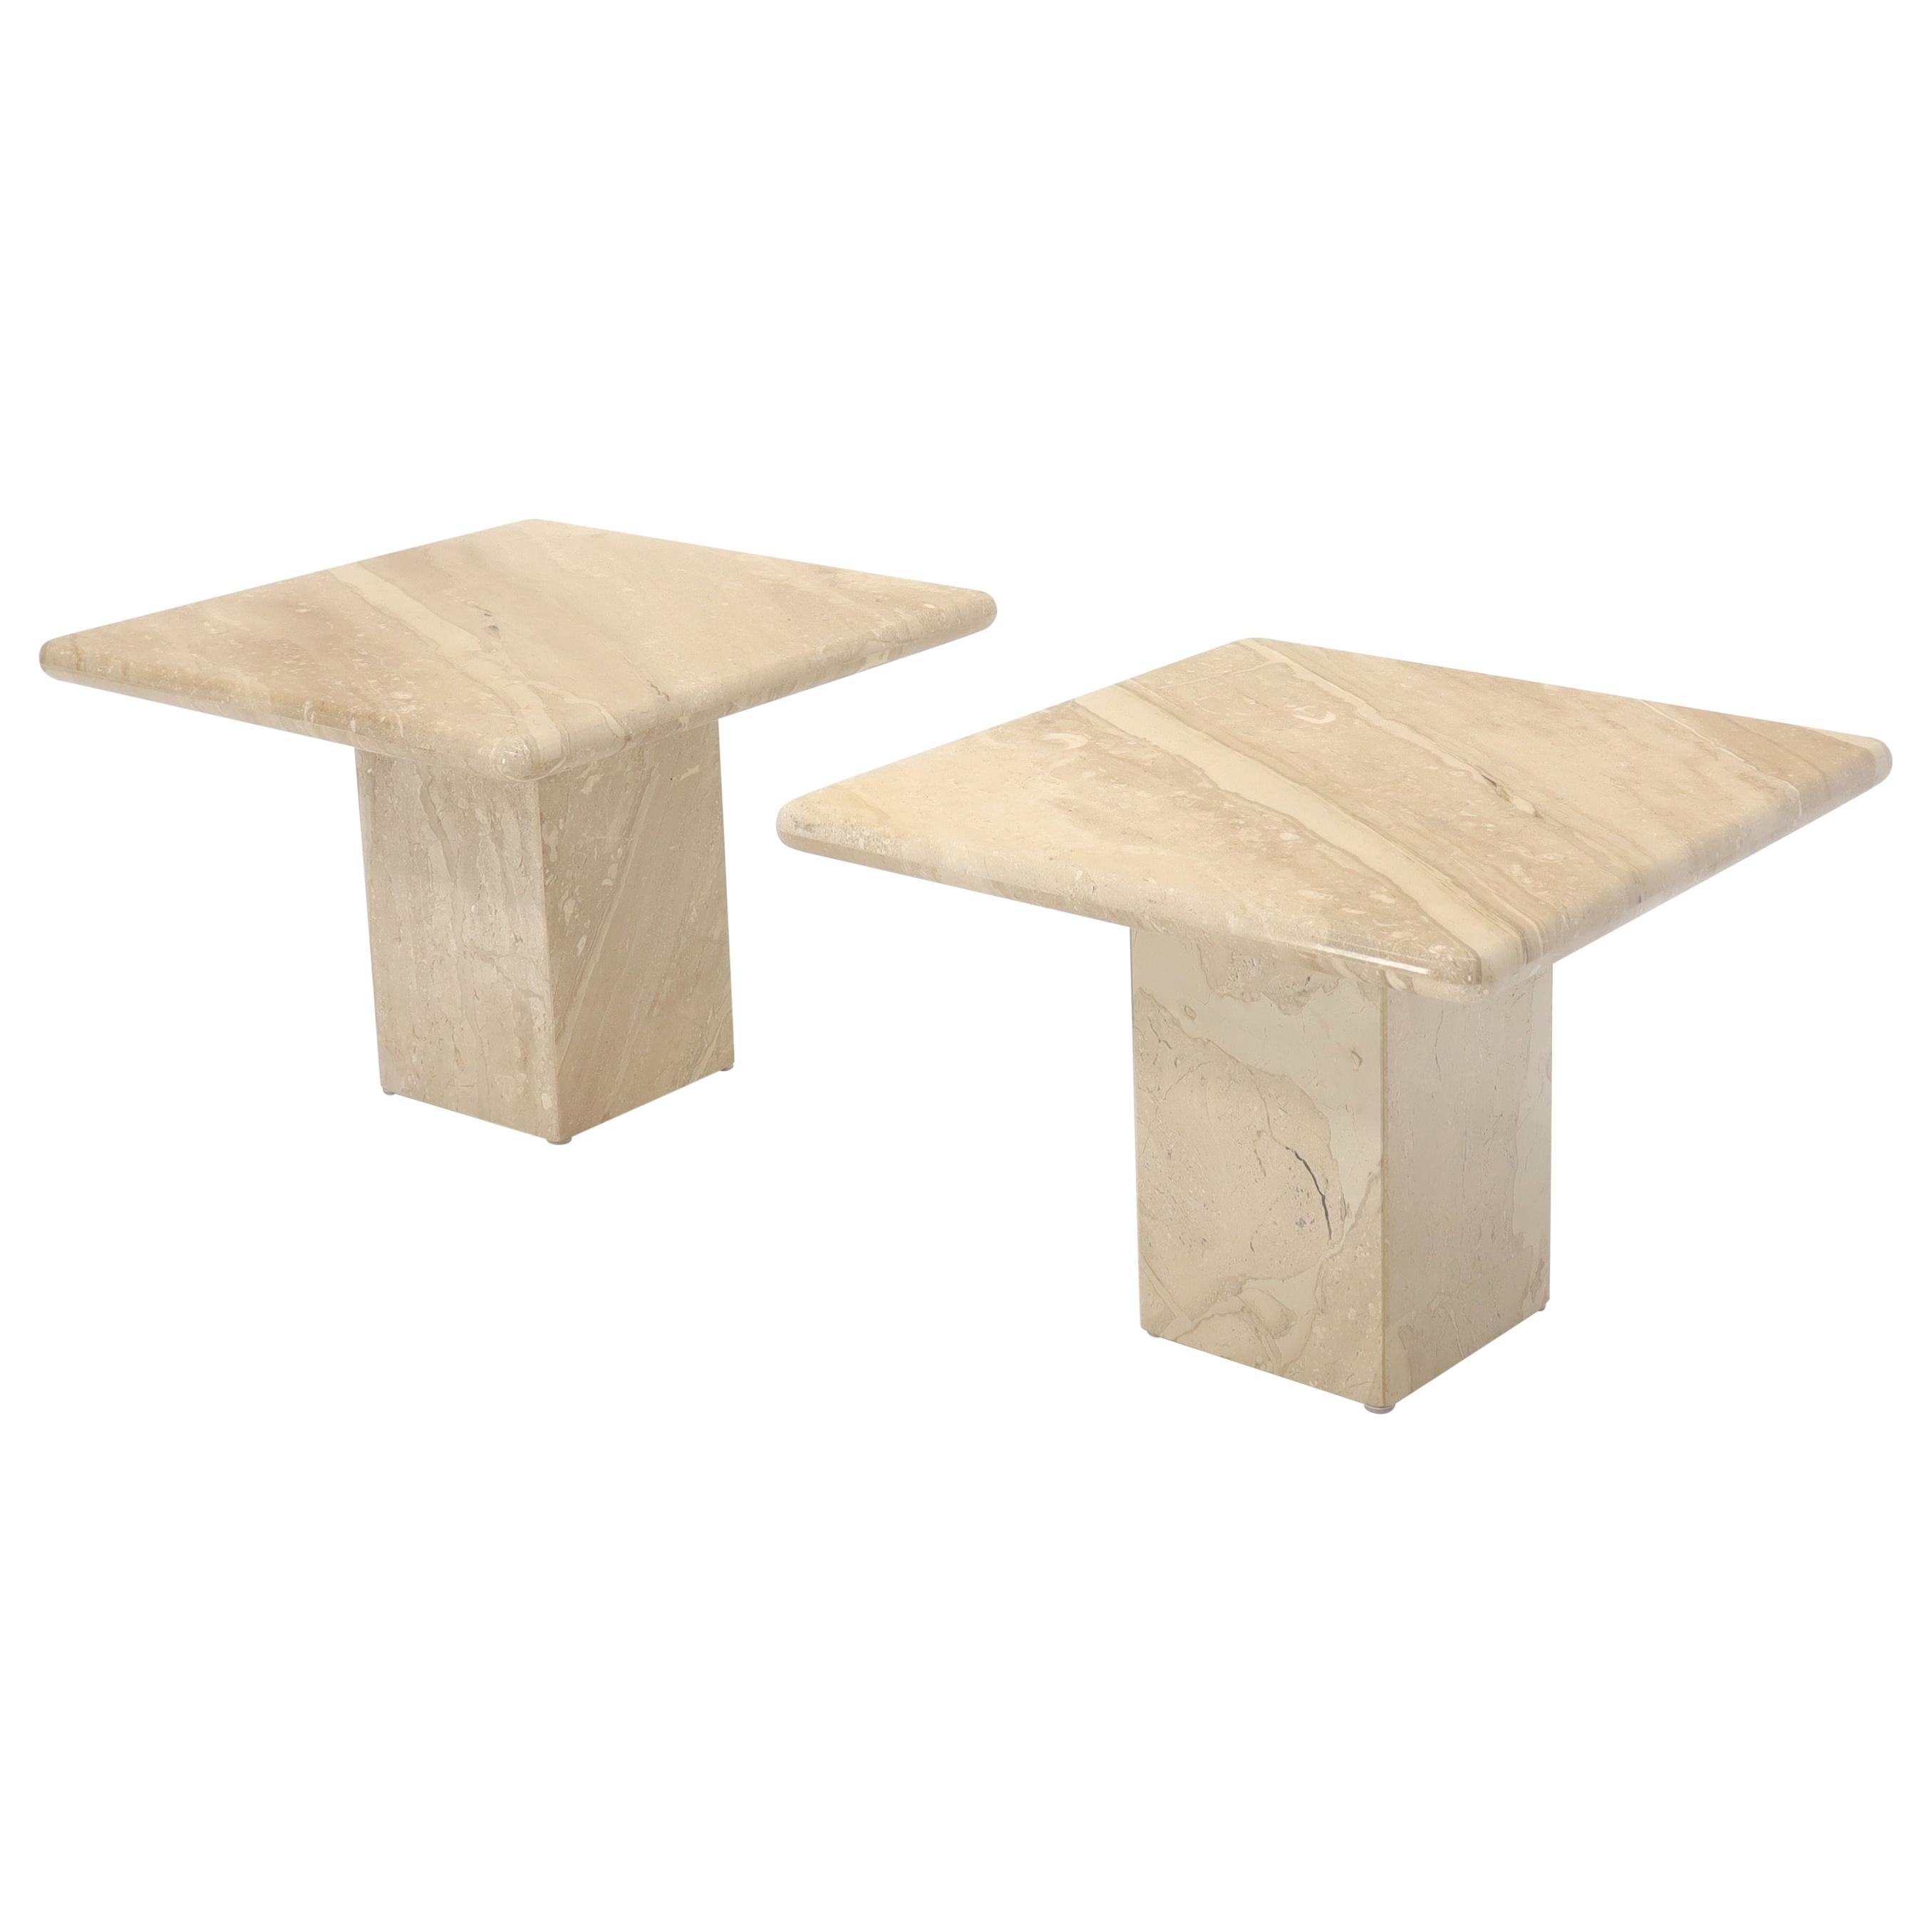 Pair of Marble or Travertine Square Side End Tables